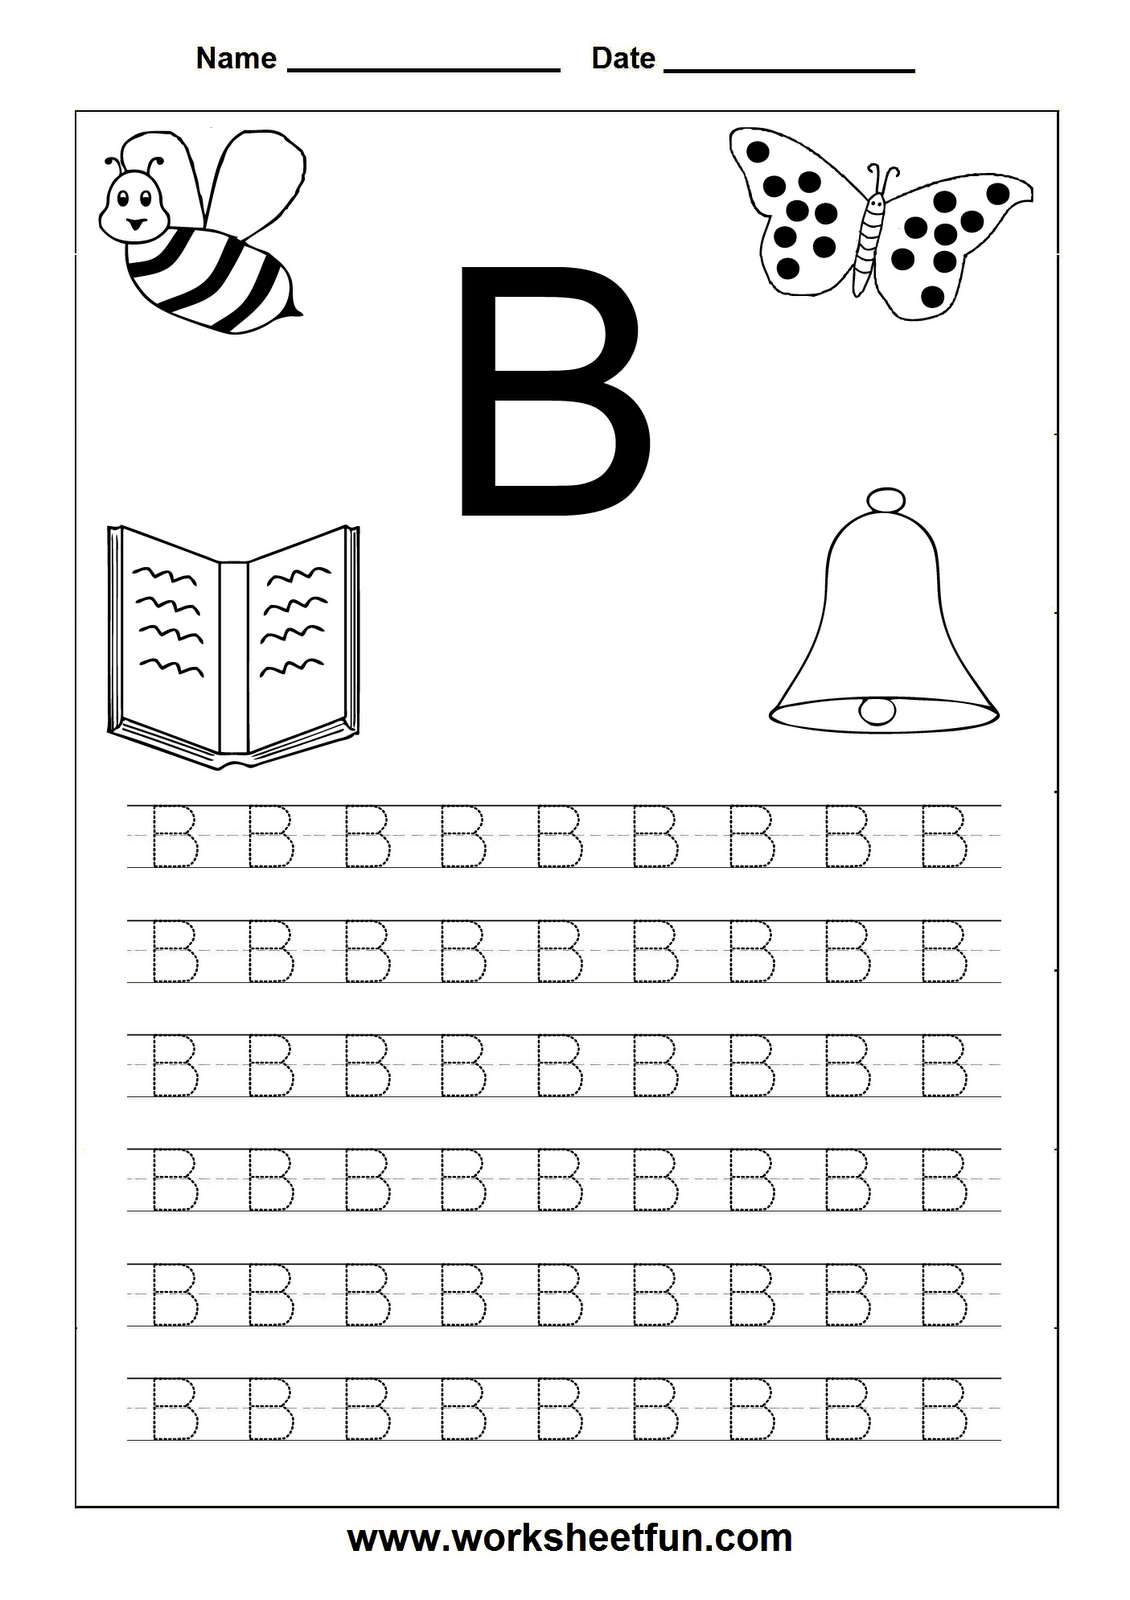 Worksheets Printable Letter A Worksheets letter tracing worksheets for kindergarten capital and small free printables letters alphabet tracing